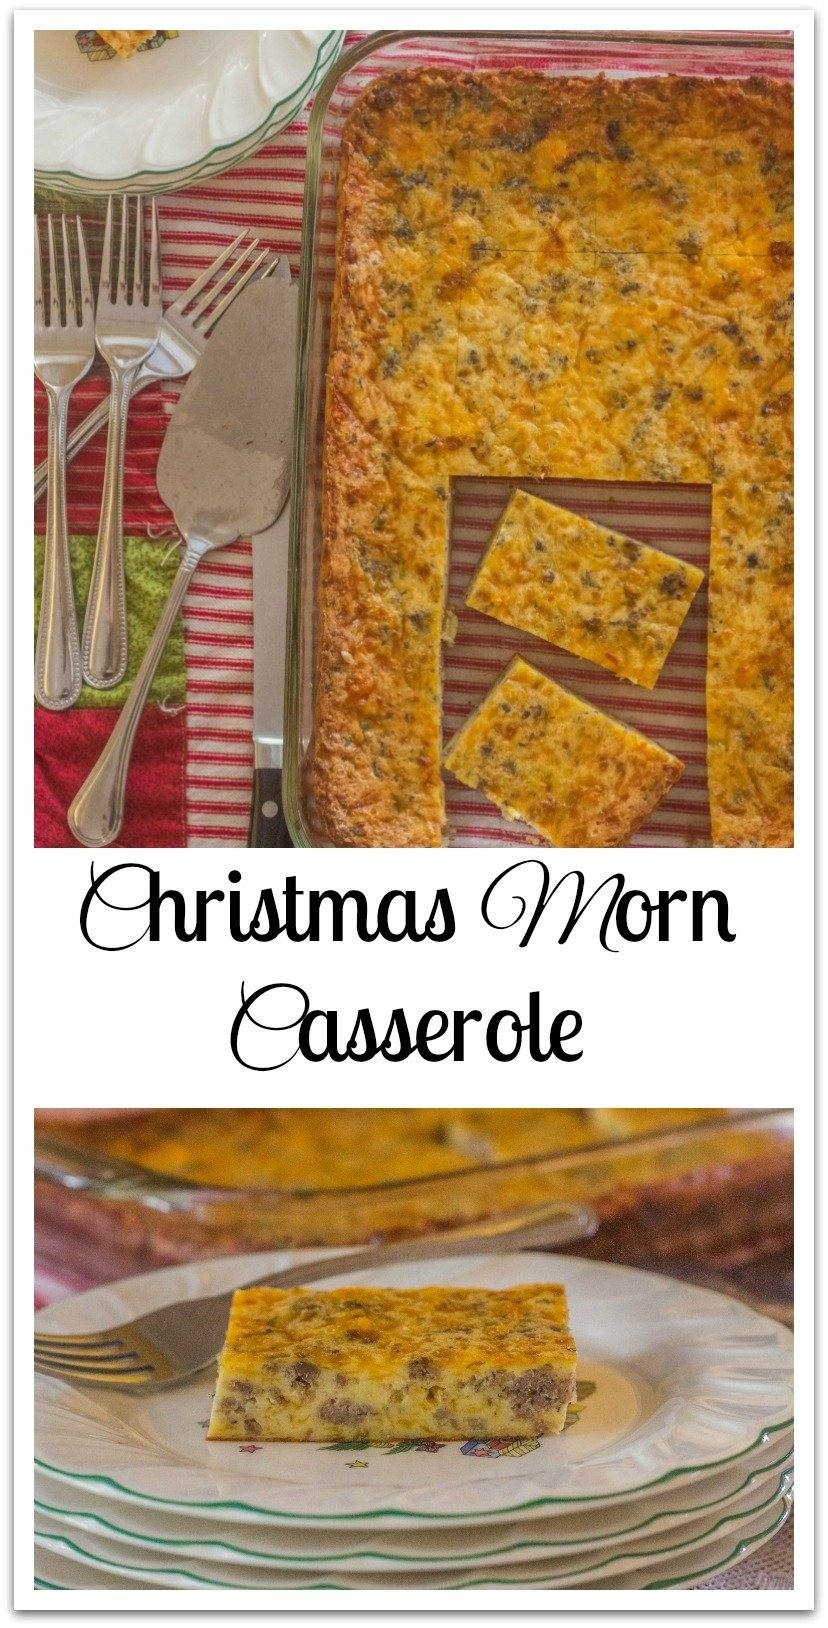 Christmas Morn Casserole is an egg, cheese, and sausage casserole that you make ahead and store in the fridge overnight. In the morning, simply bake it. No stress Christmas morning breakfast. #christmas #breakfast #casserole